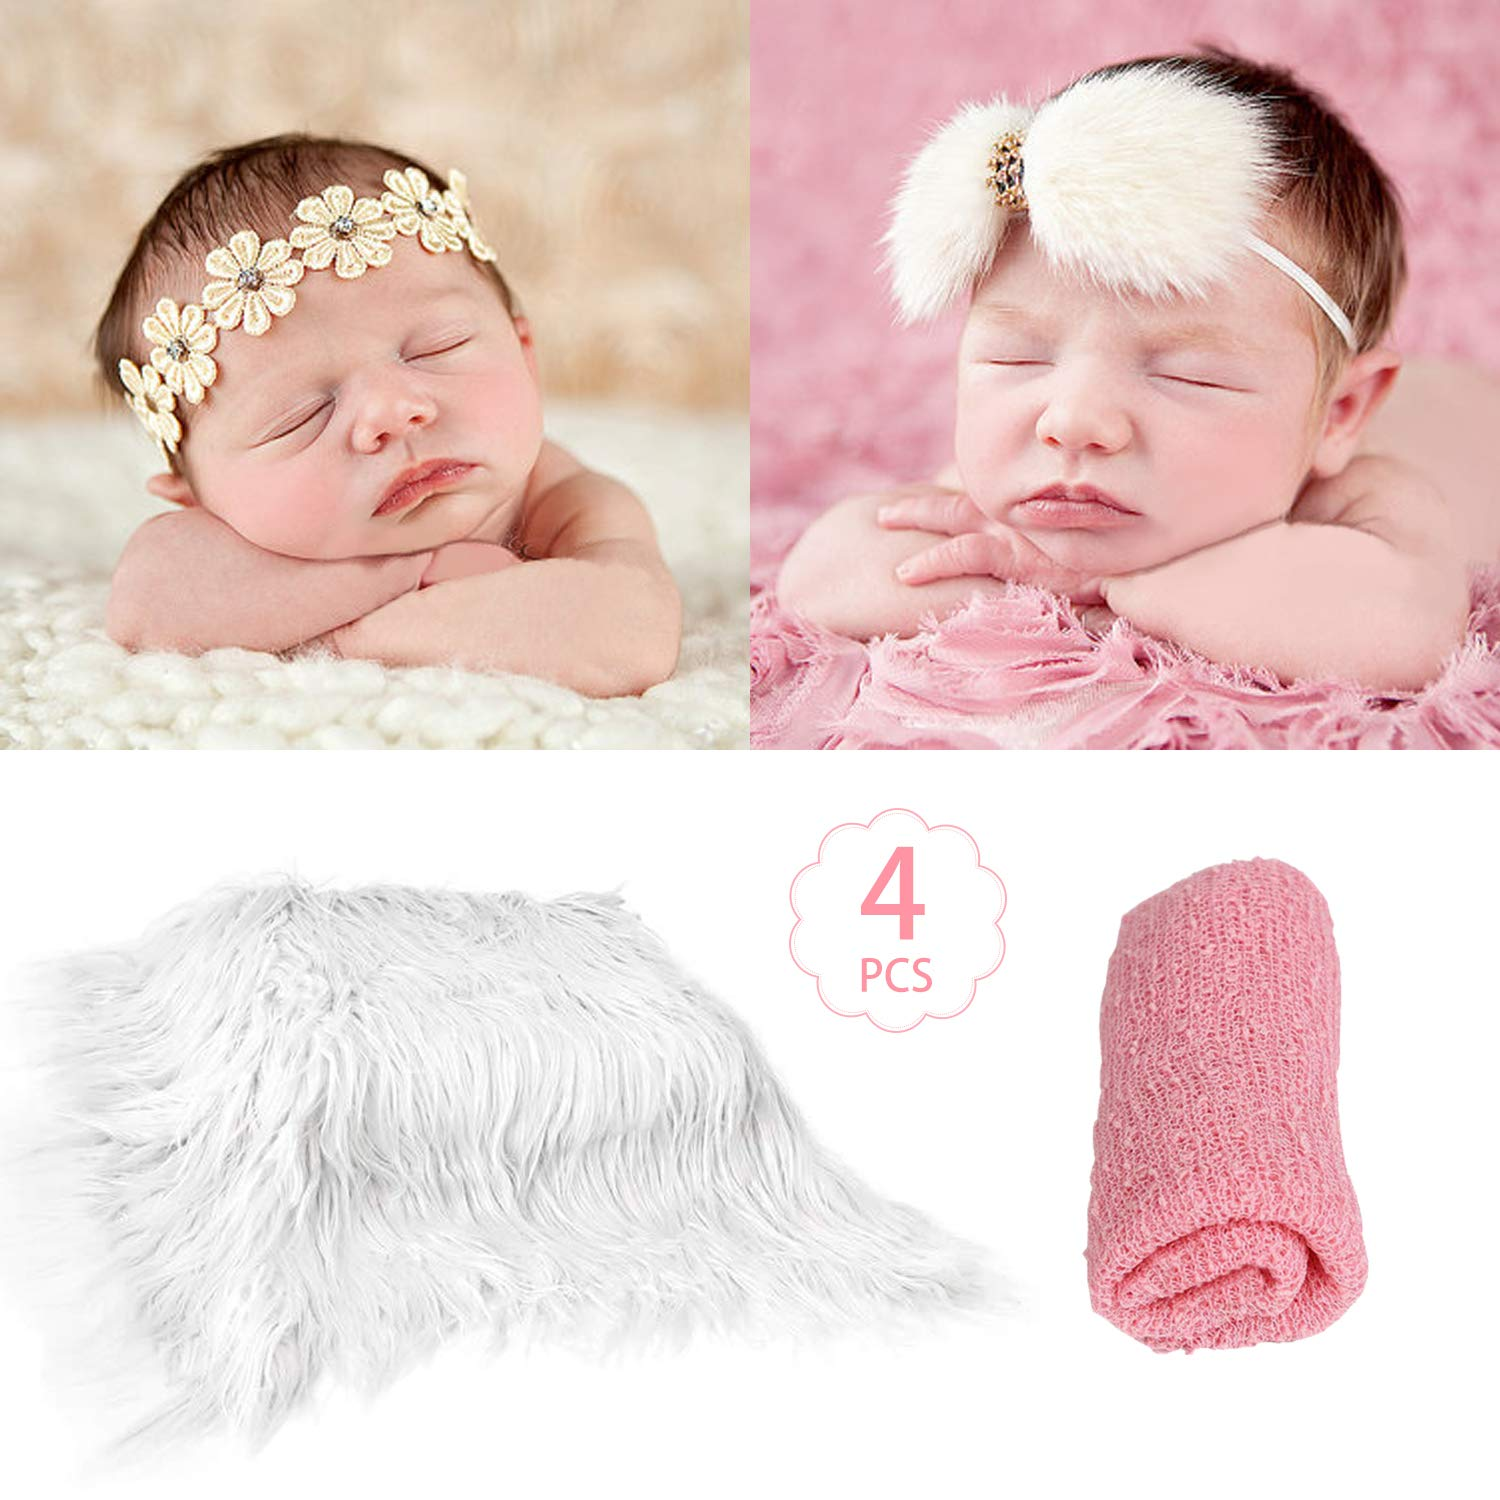 SPOKKI 4 Pcs Newborn Photography Props Outfits- Baby Pink Long Ripple Wrap and White Toddler Swaddle Blankets Photography Mat with Cute Headbands for Infant Boys Girls(0-12 Months)